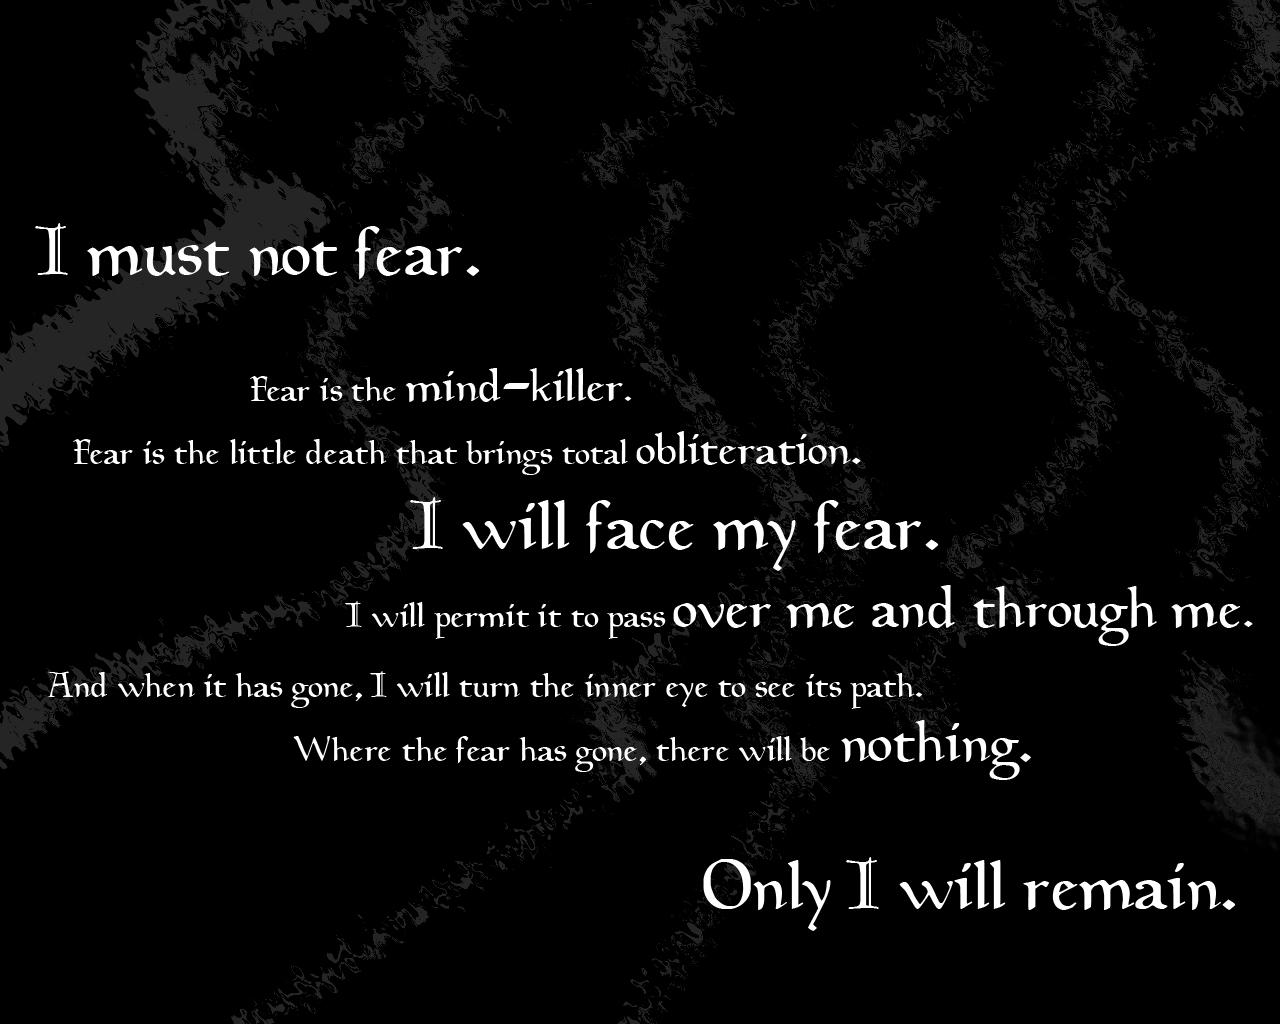 text quotes fearful motivational posters Dune Frank Herbert Paul Muad'Dib - Wallpaper (#249827) / Wallbase.cc